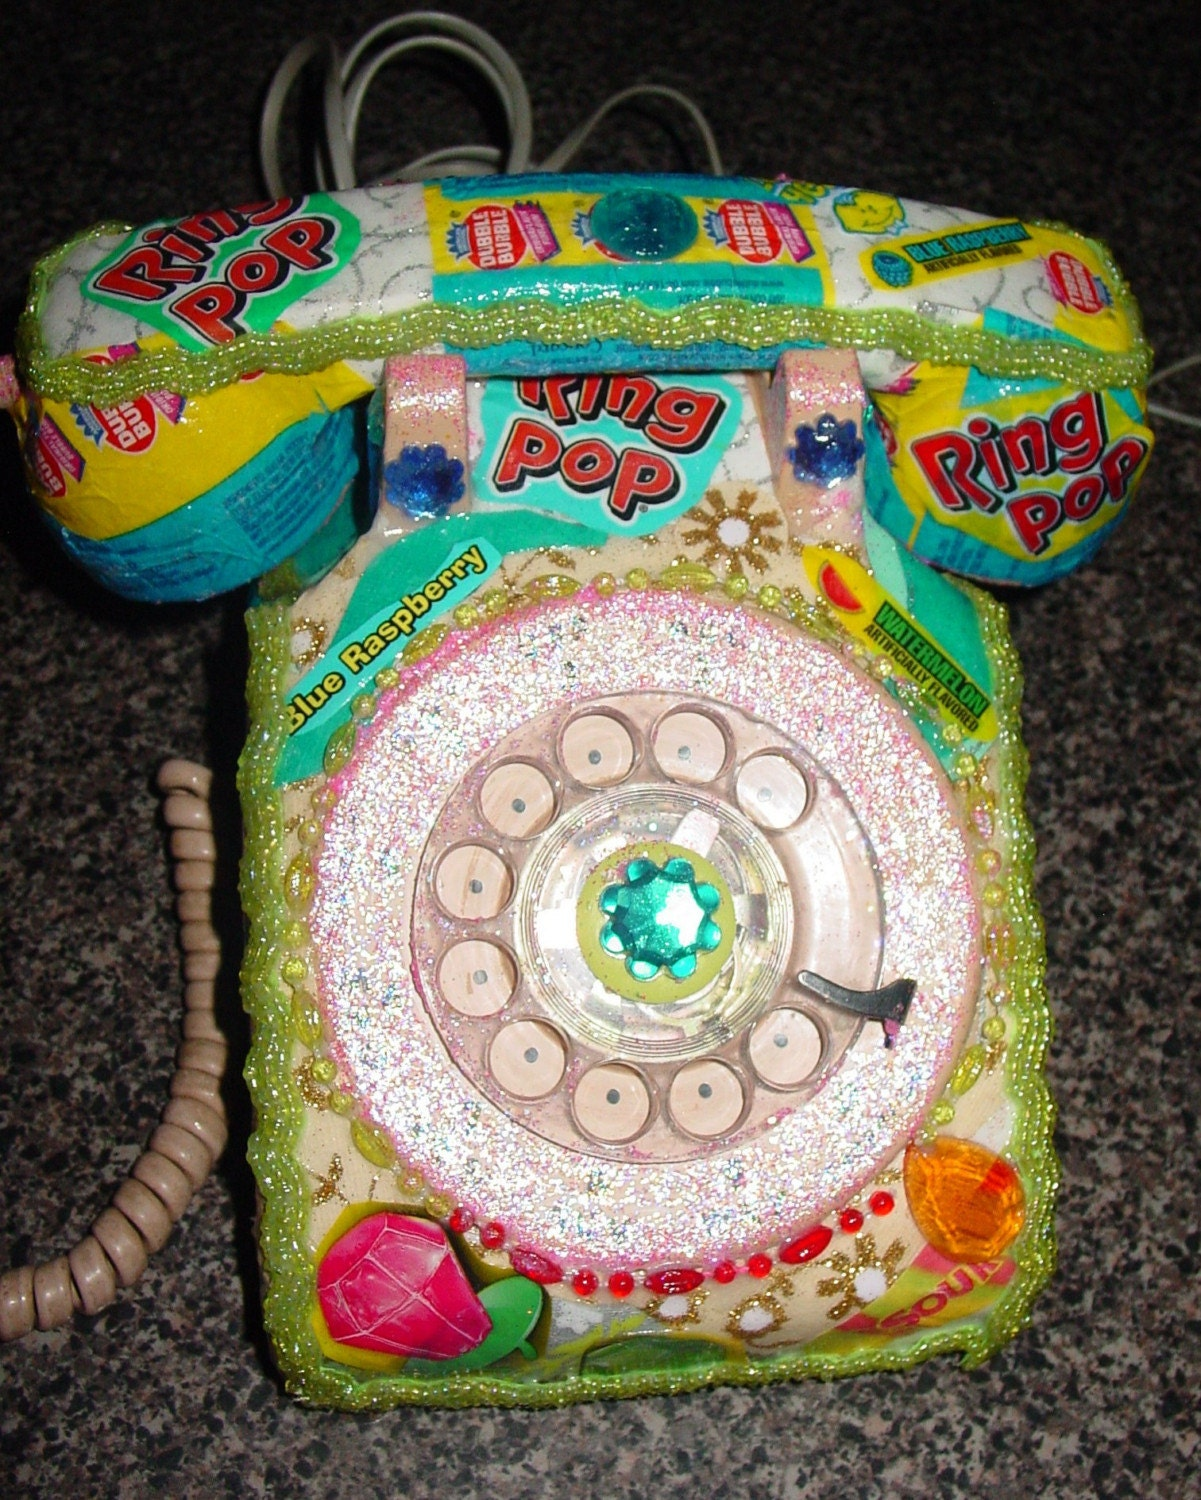 recycled vintage dial phone by C.Reinke RING POP candy wrappers.Kitsch at its best